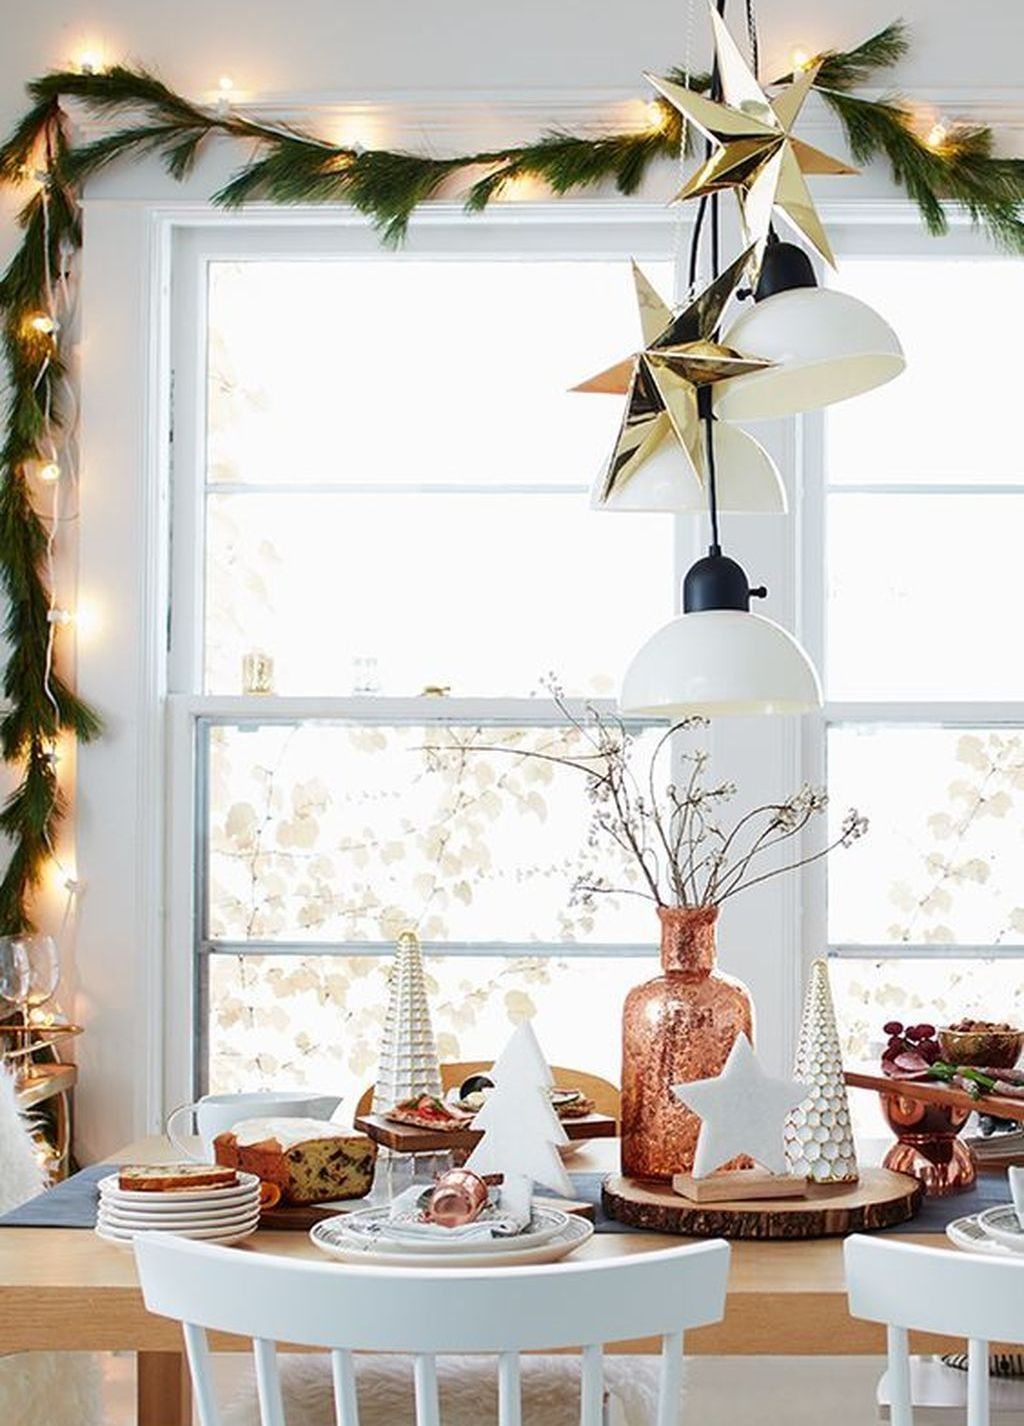 47 DIY Christmas Decorations Ideas For Small Space (With ...